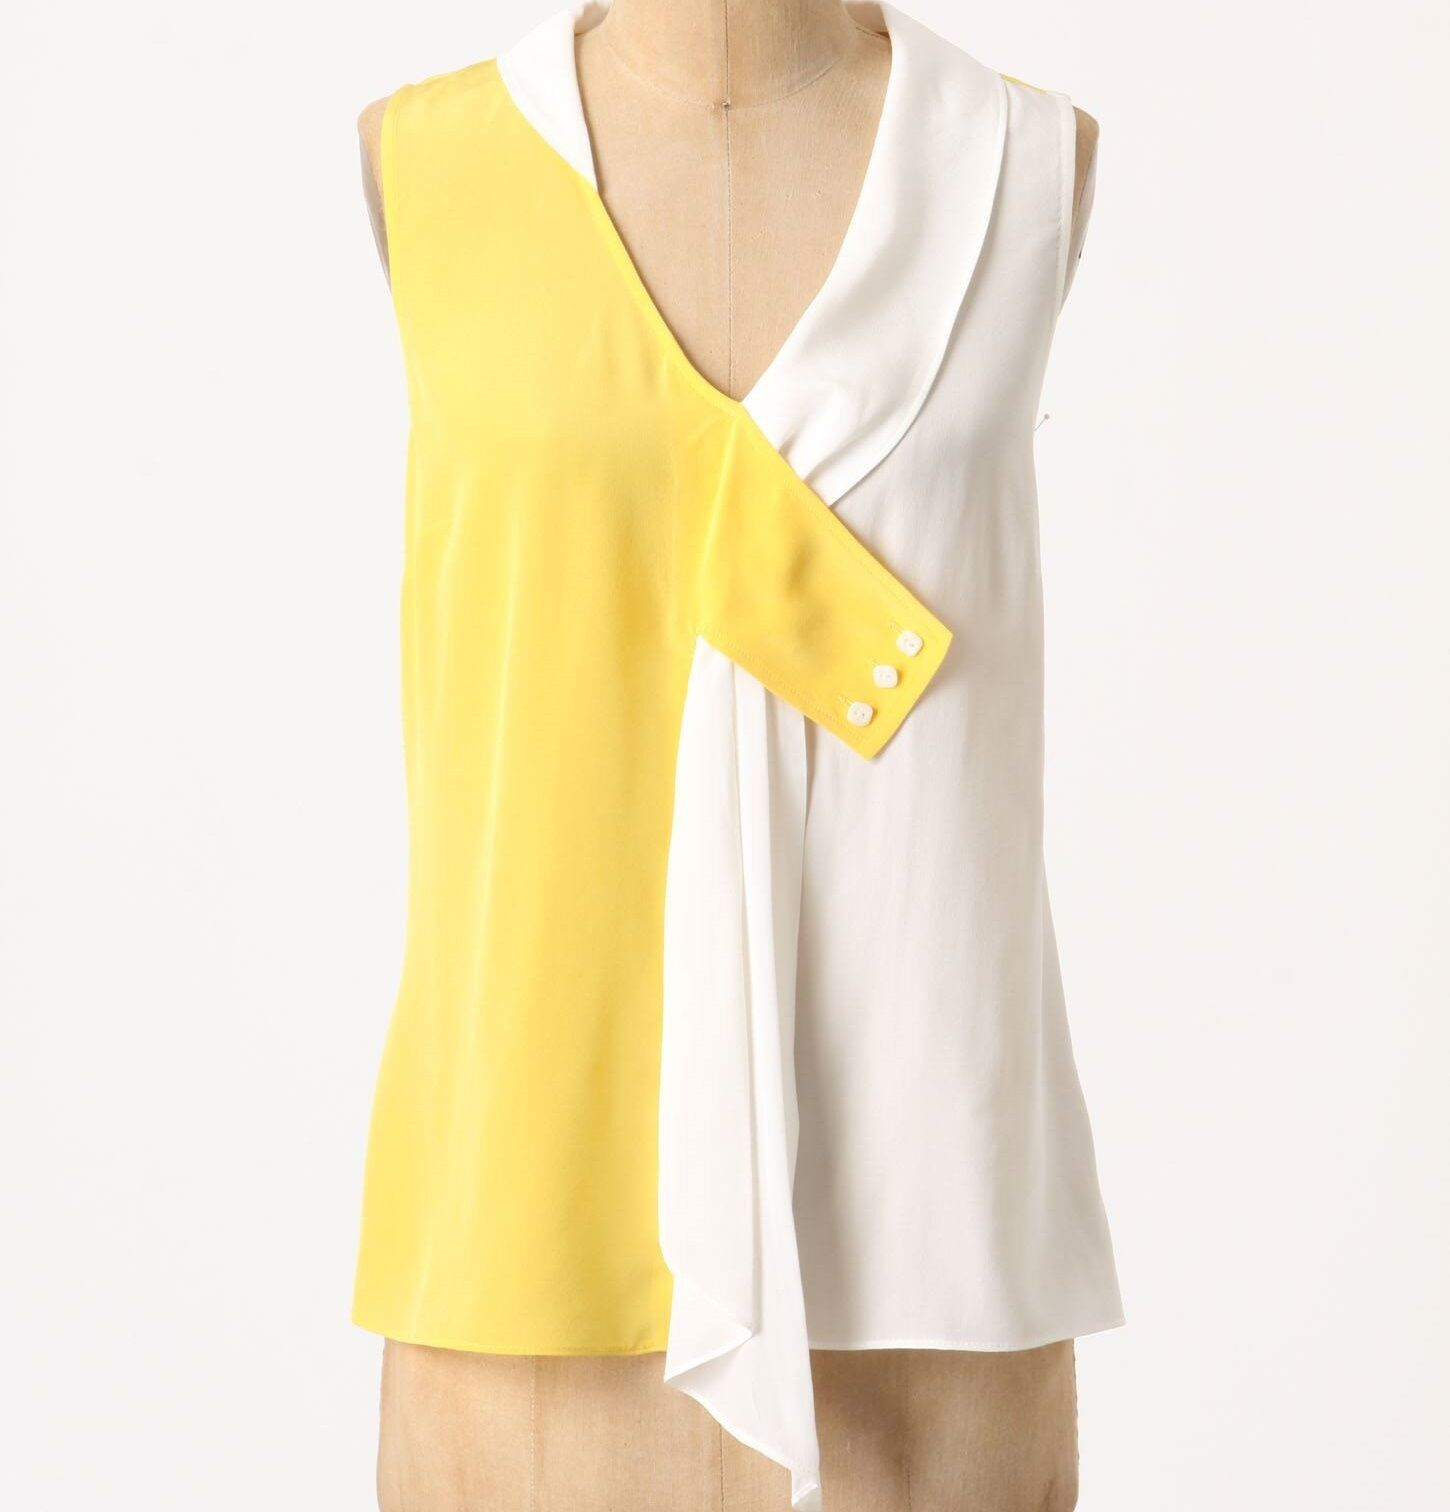 Maeve Silk Drapey Dyad Tank Blouse Top Size 4 Yellow MOT NW ANTHROPOLOGIE Tag